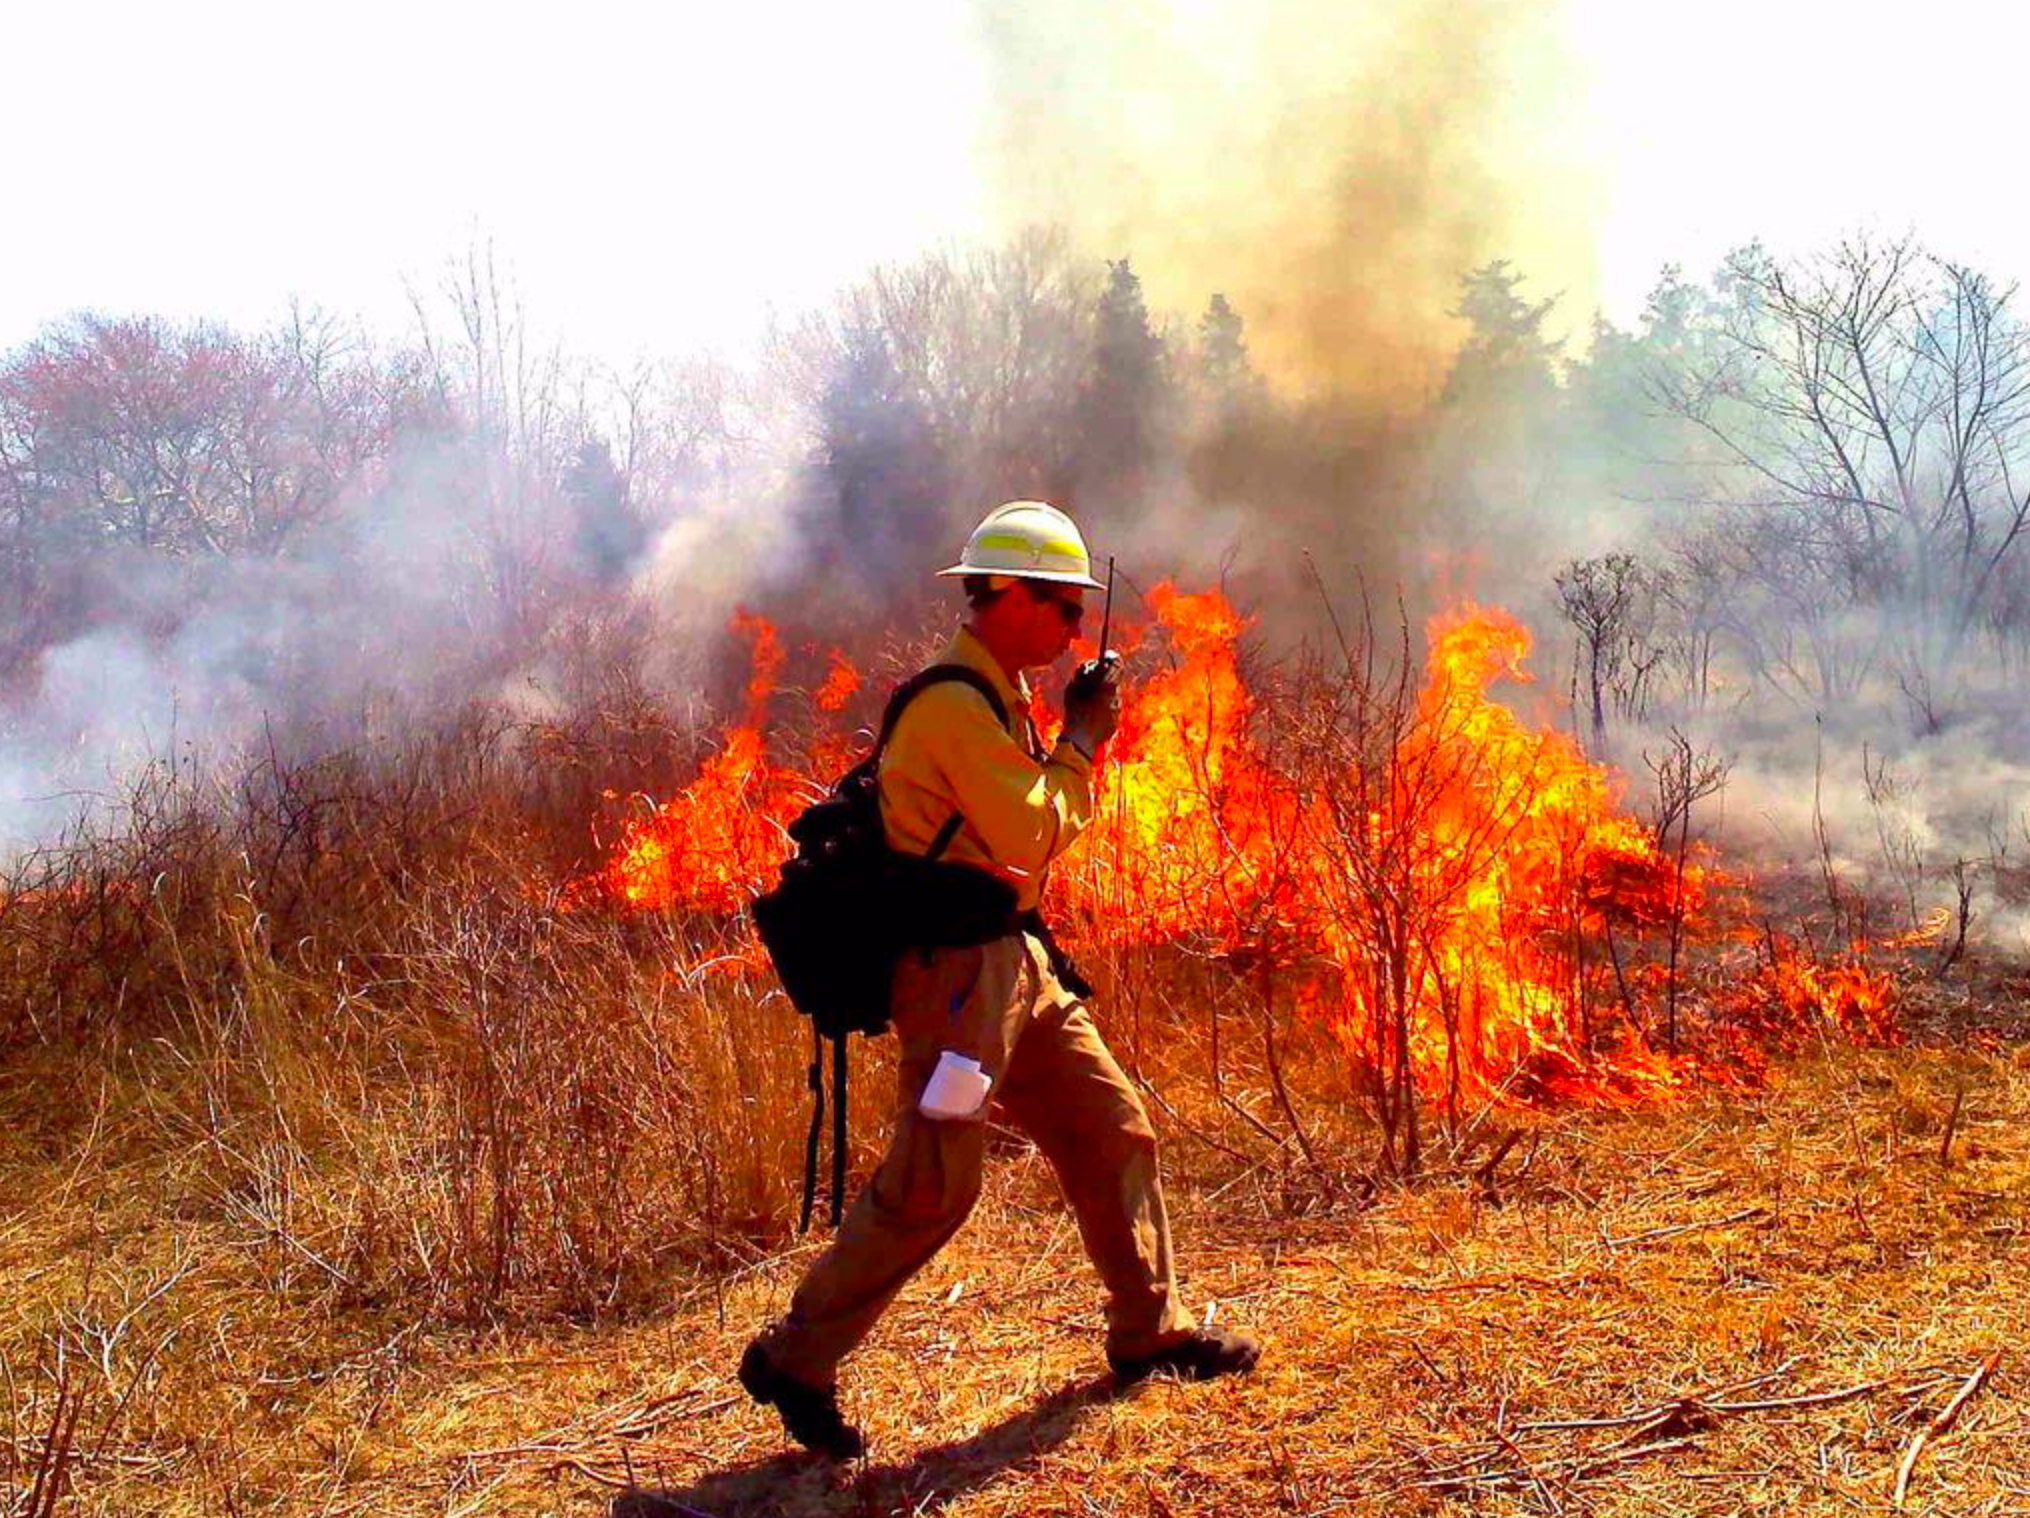 Dave Walker, Fire Managament Officer, monitors the burn. Taken on March 31, 2012 at Ninigret NWR. Photo Credit: Juancarlos Giese, USFWS